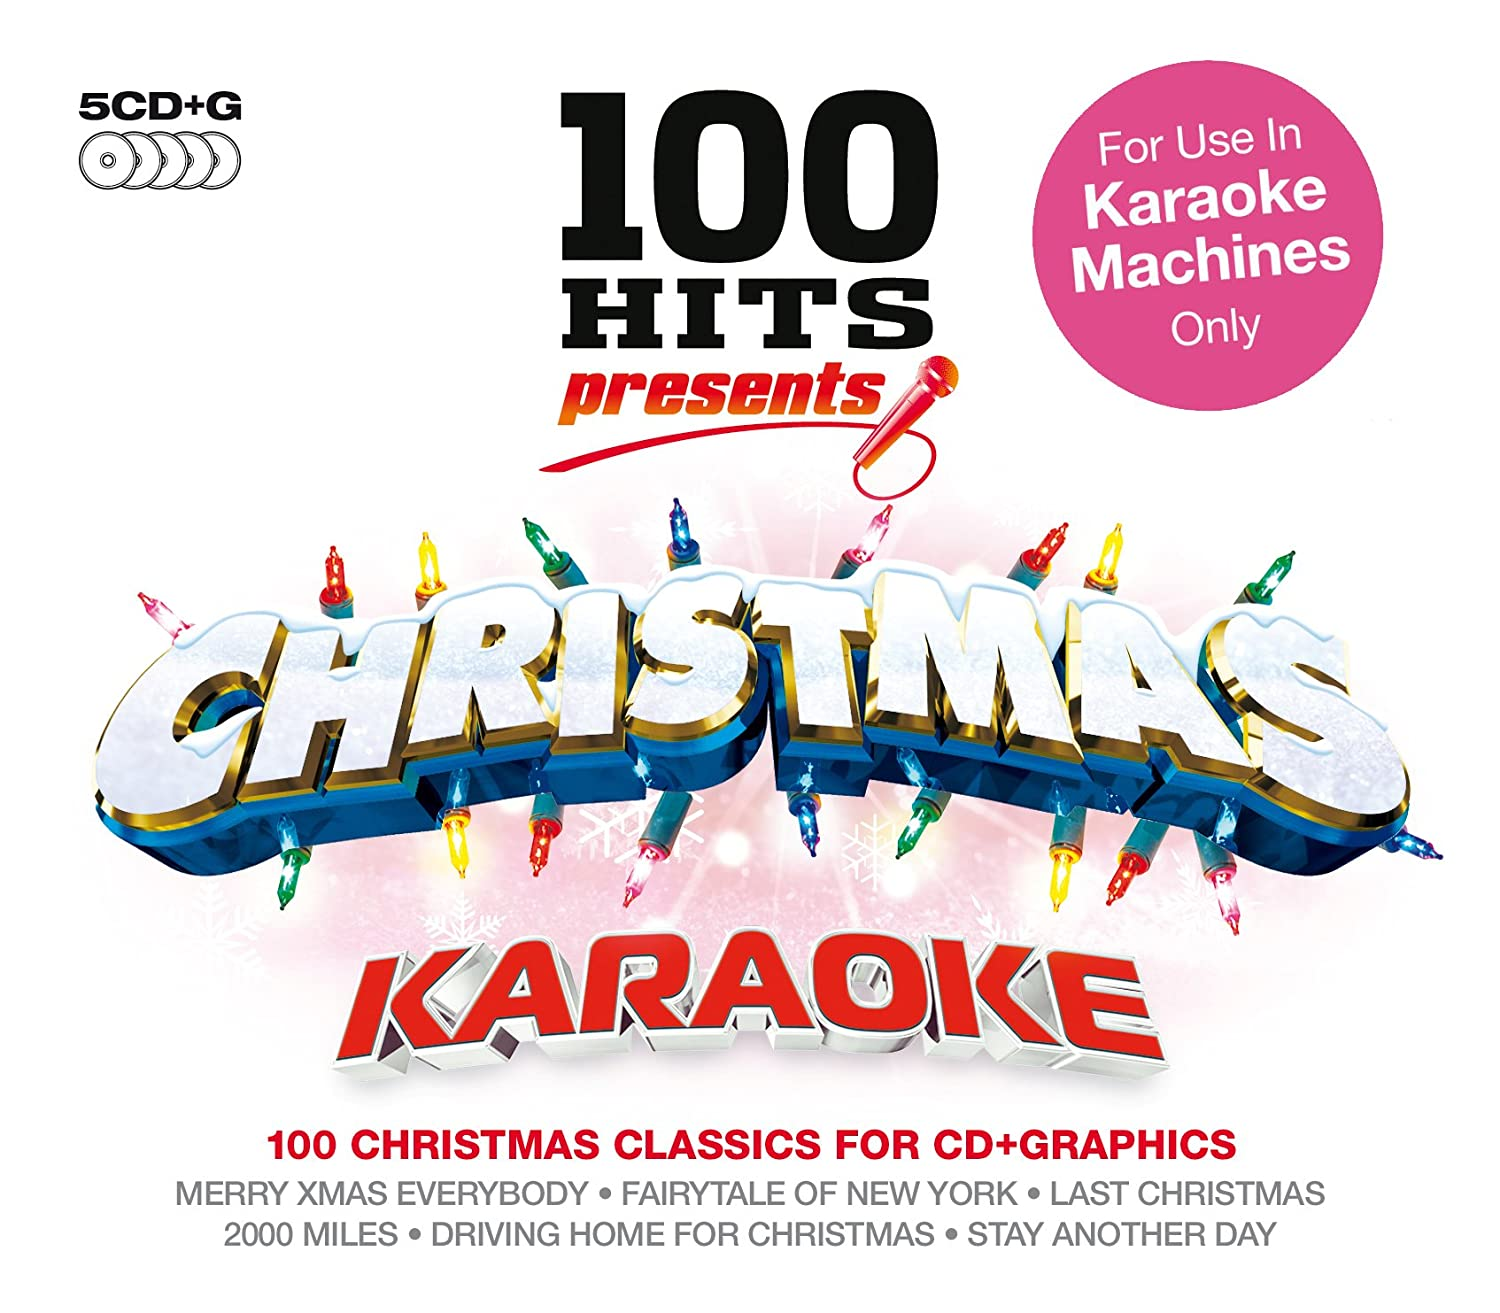 100 Hits Presents - Christmas Karaoke: Amazon.co.uk: Music